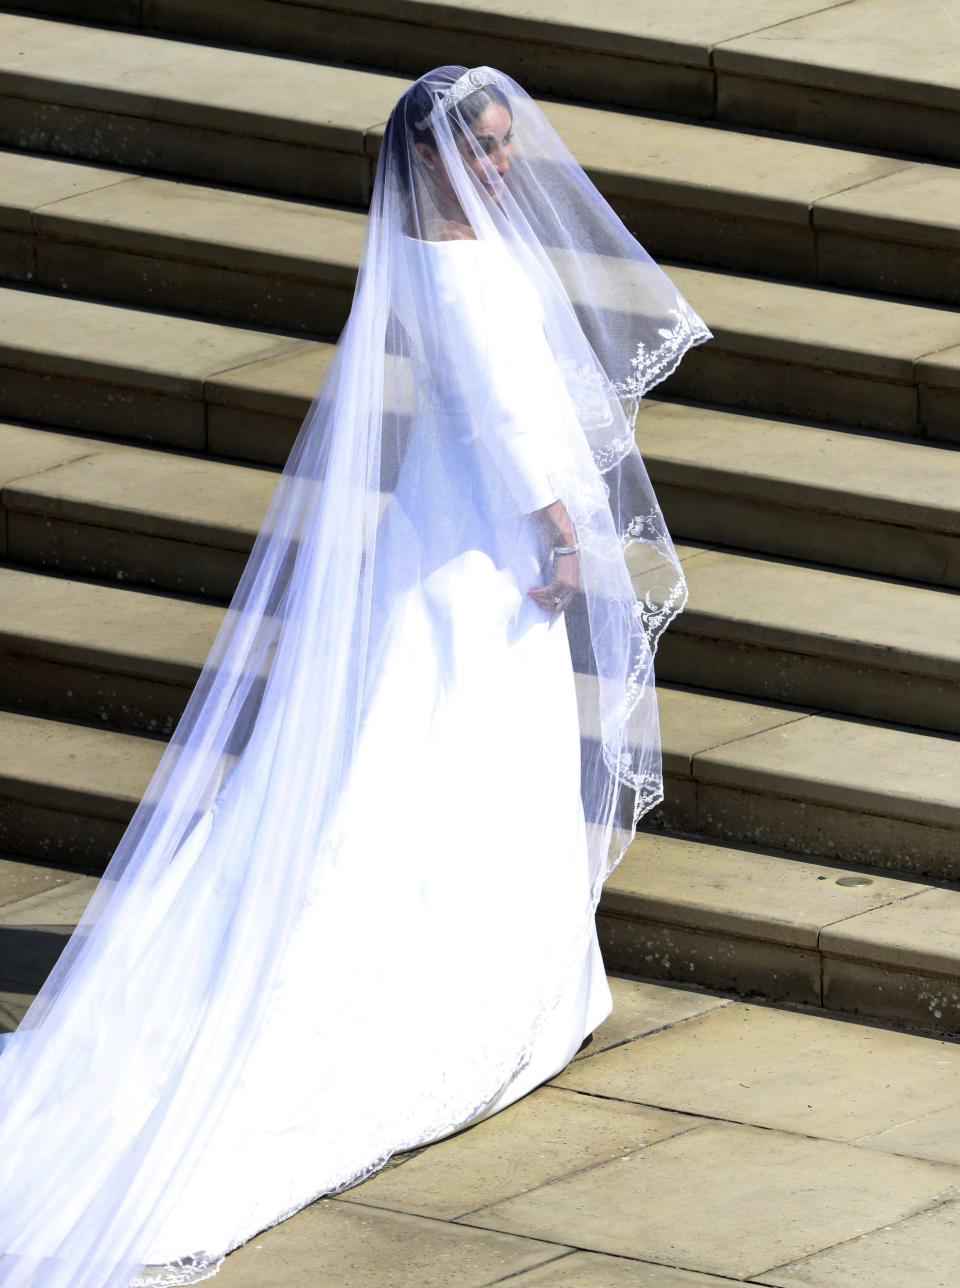 The Duchess of Sussex has also revealed the tribute to the commonwealth countries in her veil [Photo: Getty]